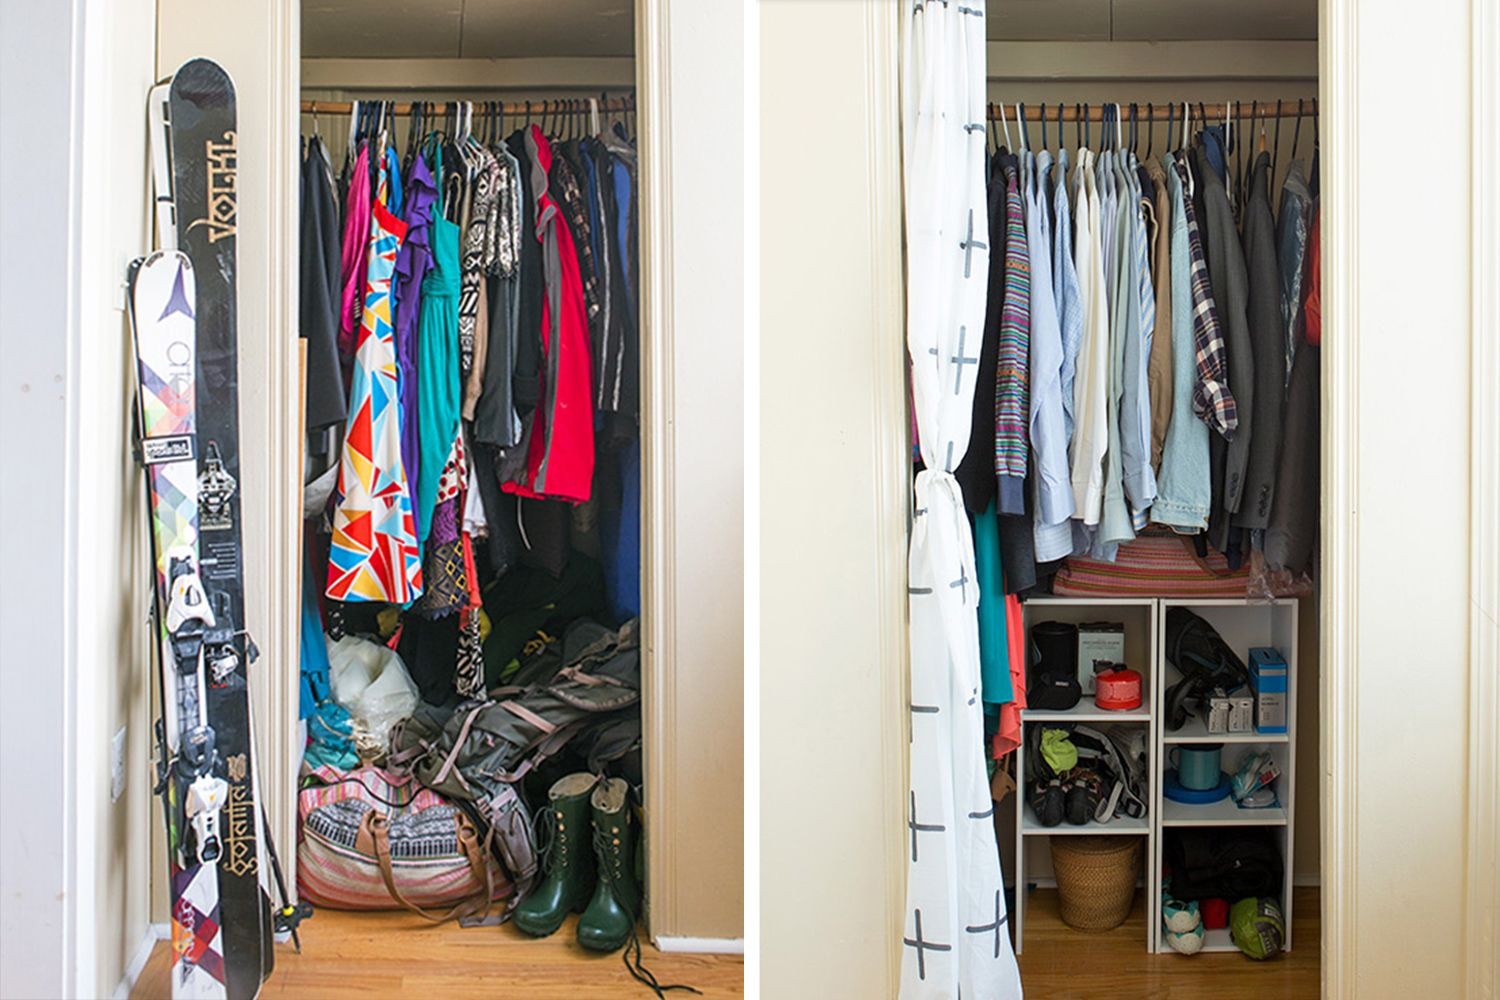 Closet Organizing Before And After // How To Organize Your Closet //  Organized Home // Capsule Wardrobe // Decluttering // Storage Solutions //  Www.